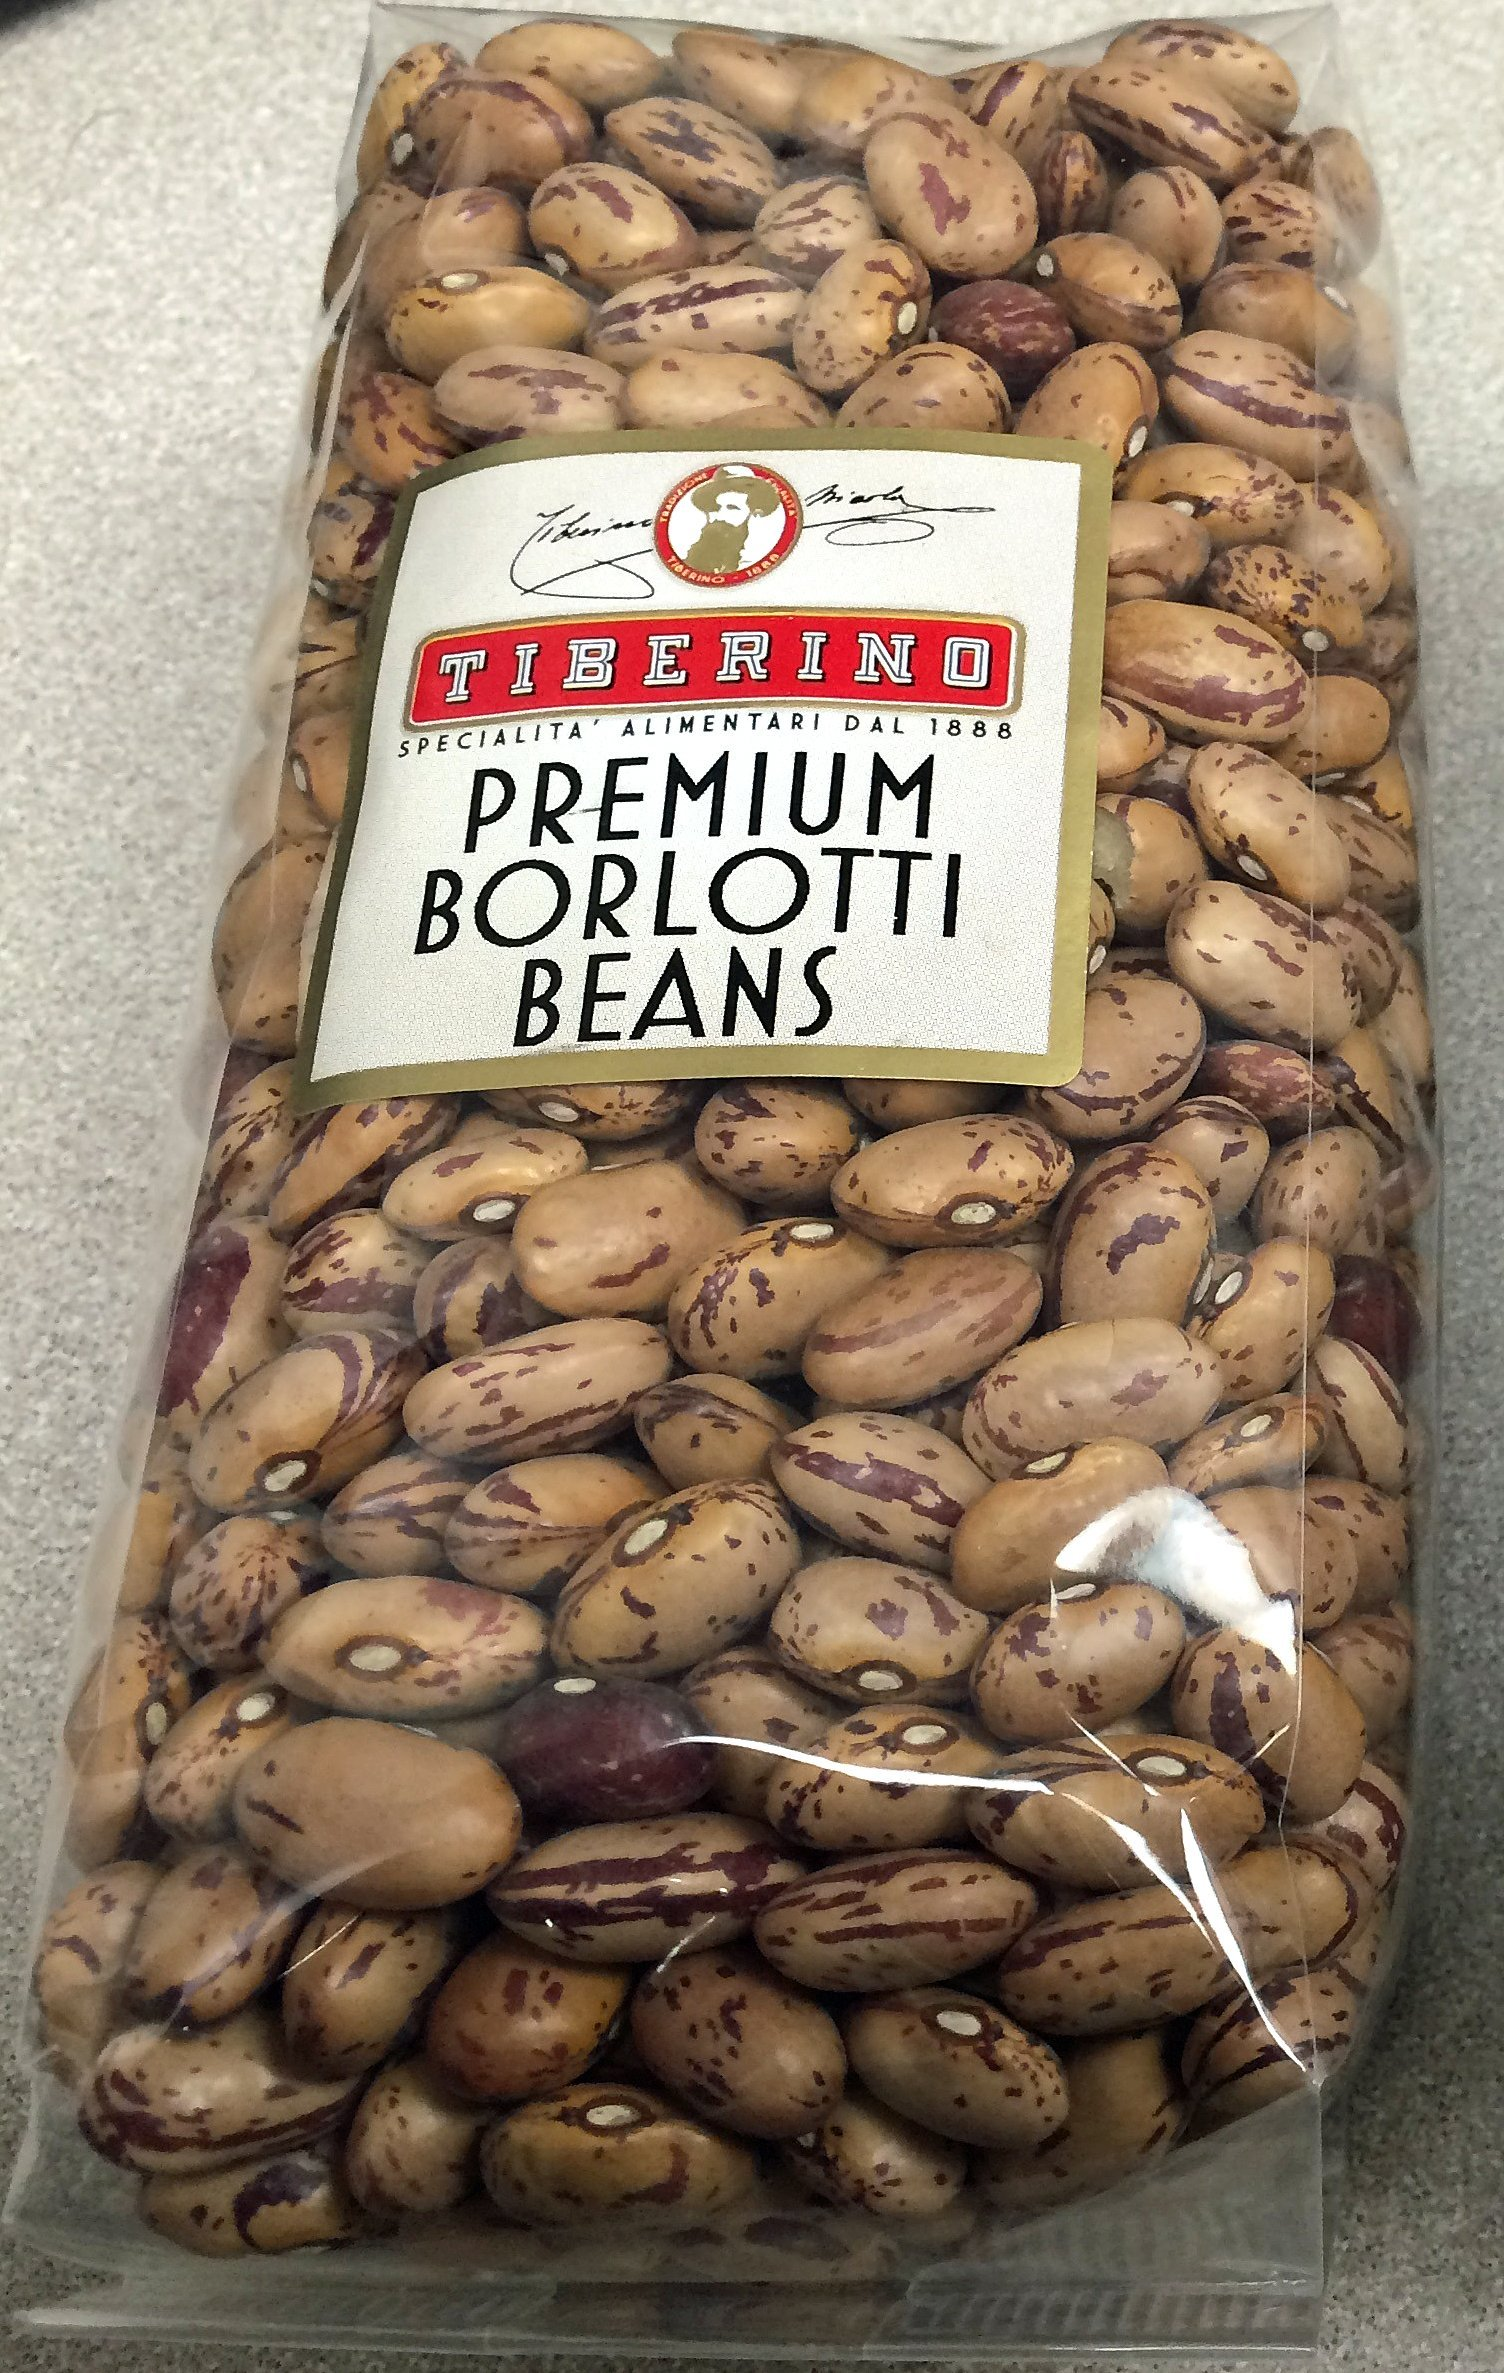 Premium Borlotti (Cranberry) Beans-Imported from Italy by Tiberino